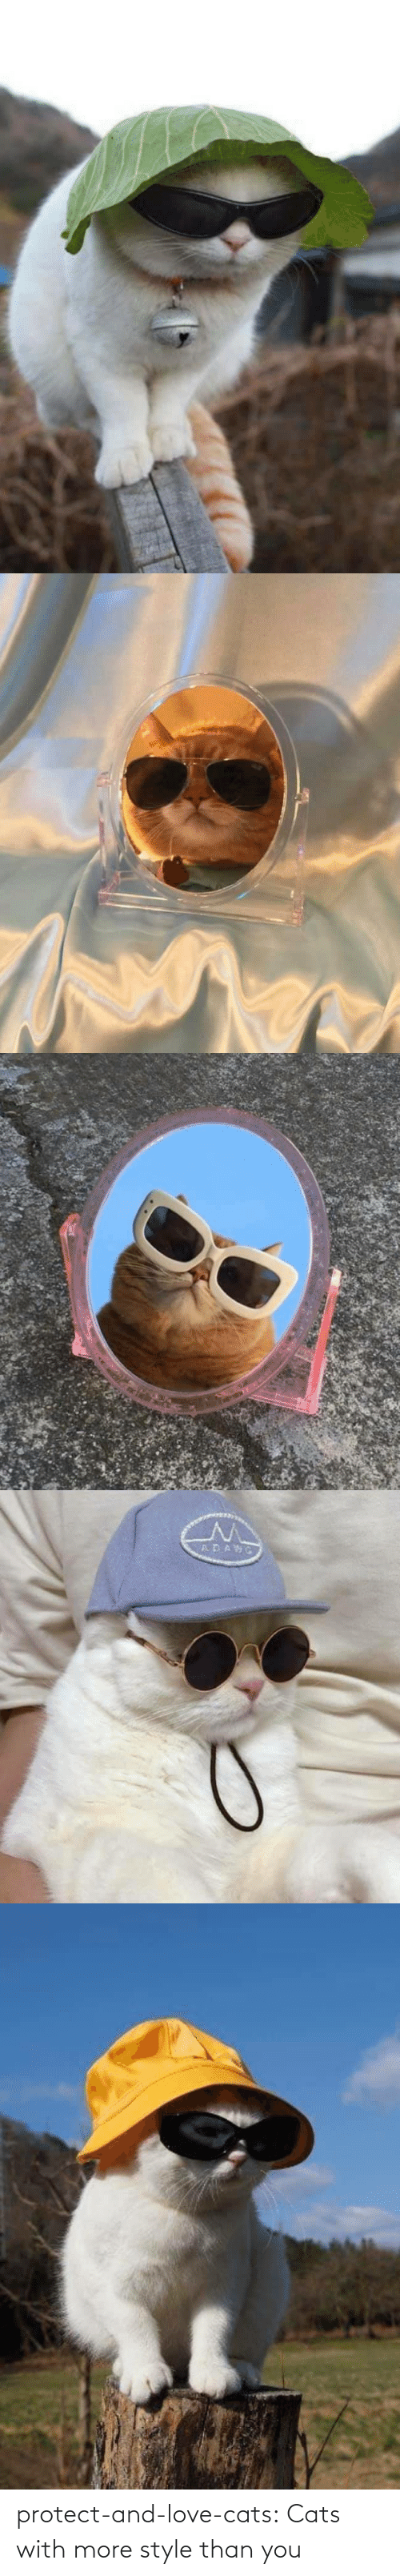 love cats: protect-and-love-cats:  Cats with more style than you